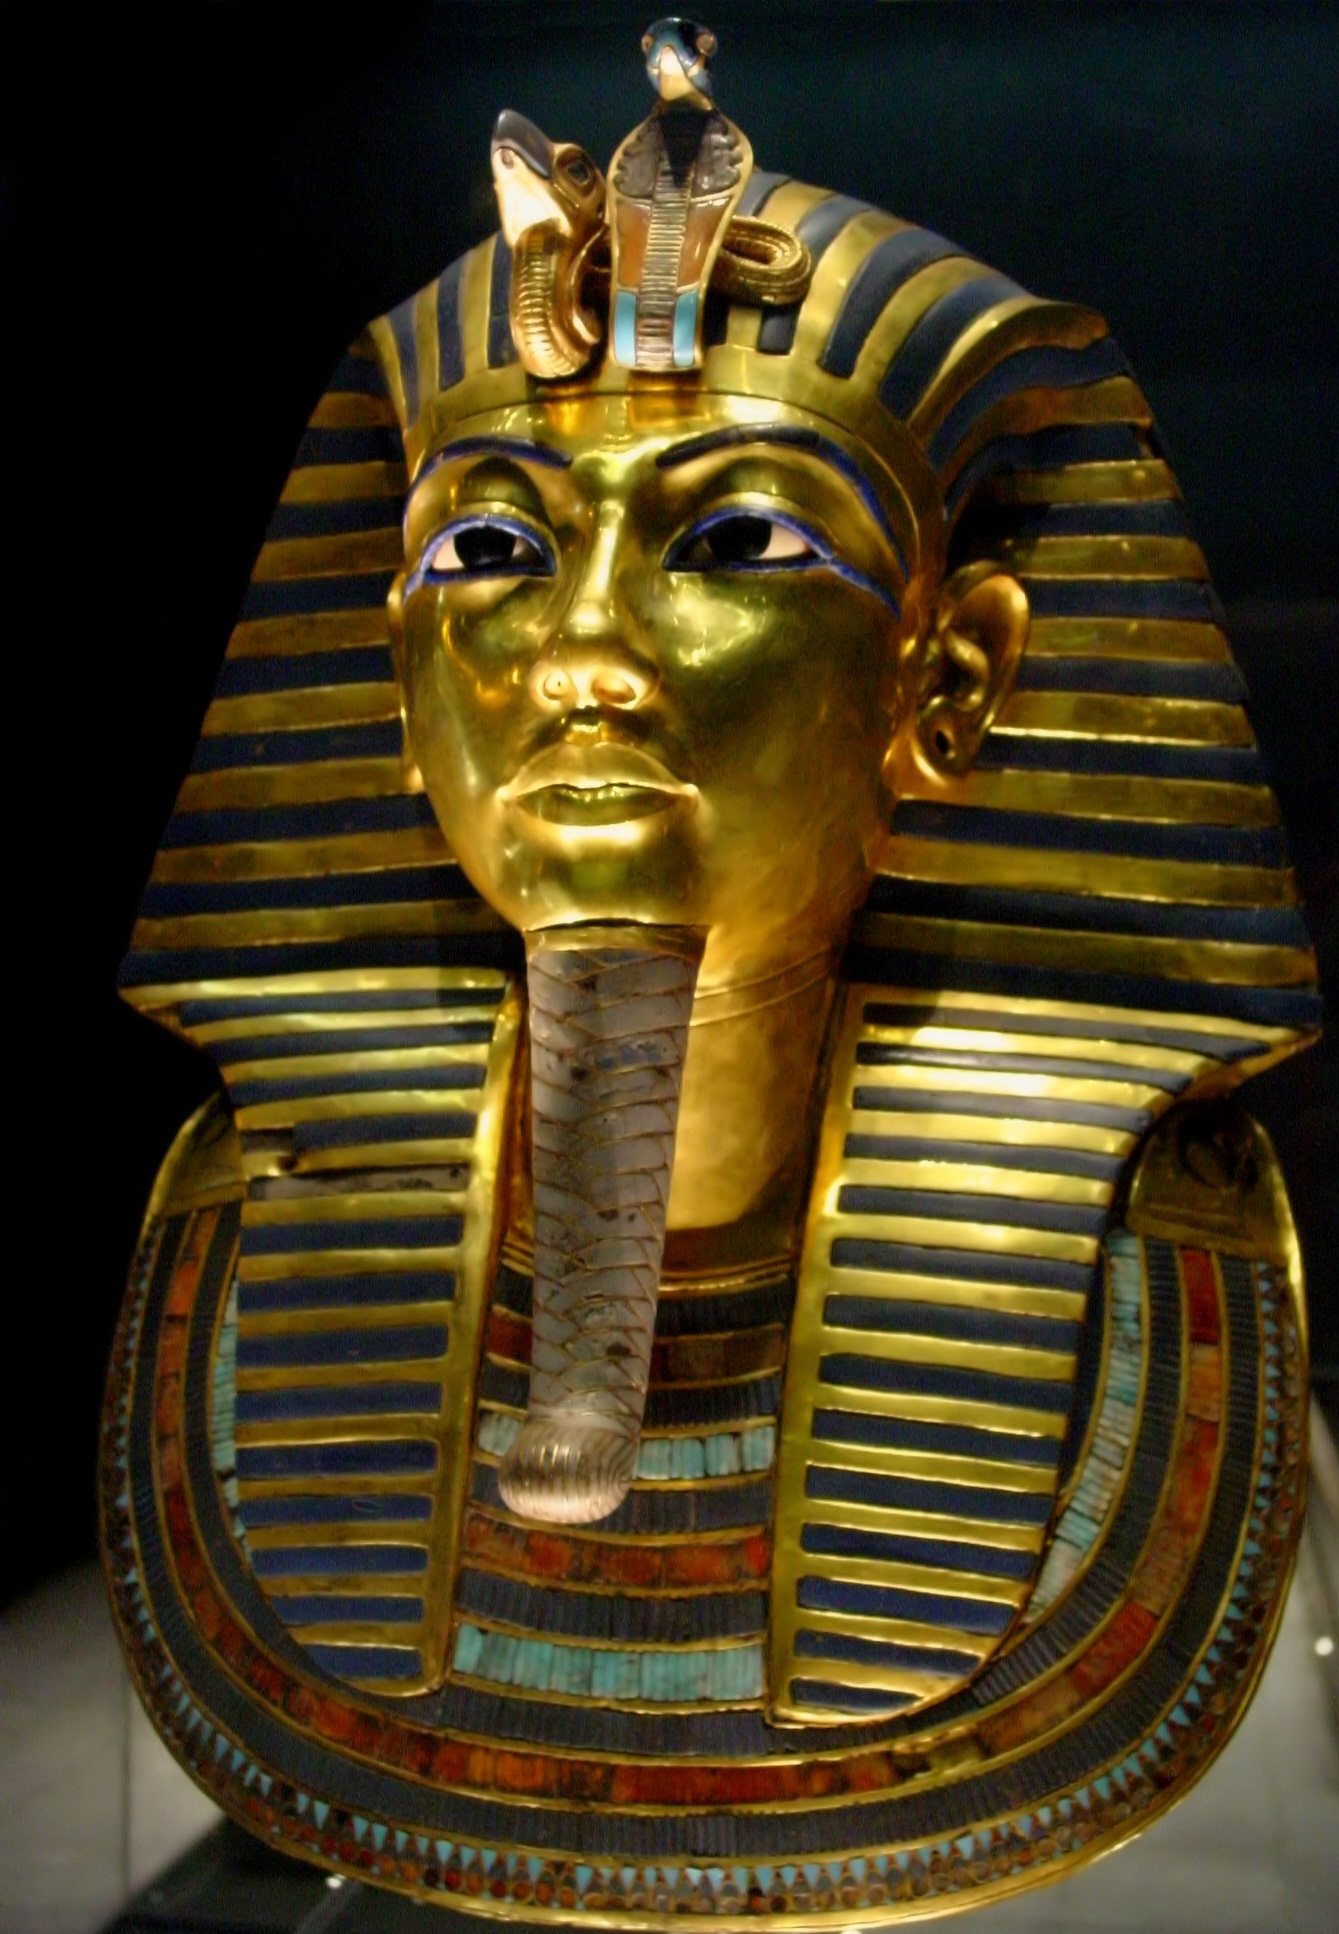 King Tut's Mask at the Egyptian Museum, Cairo